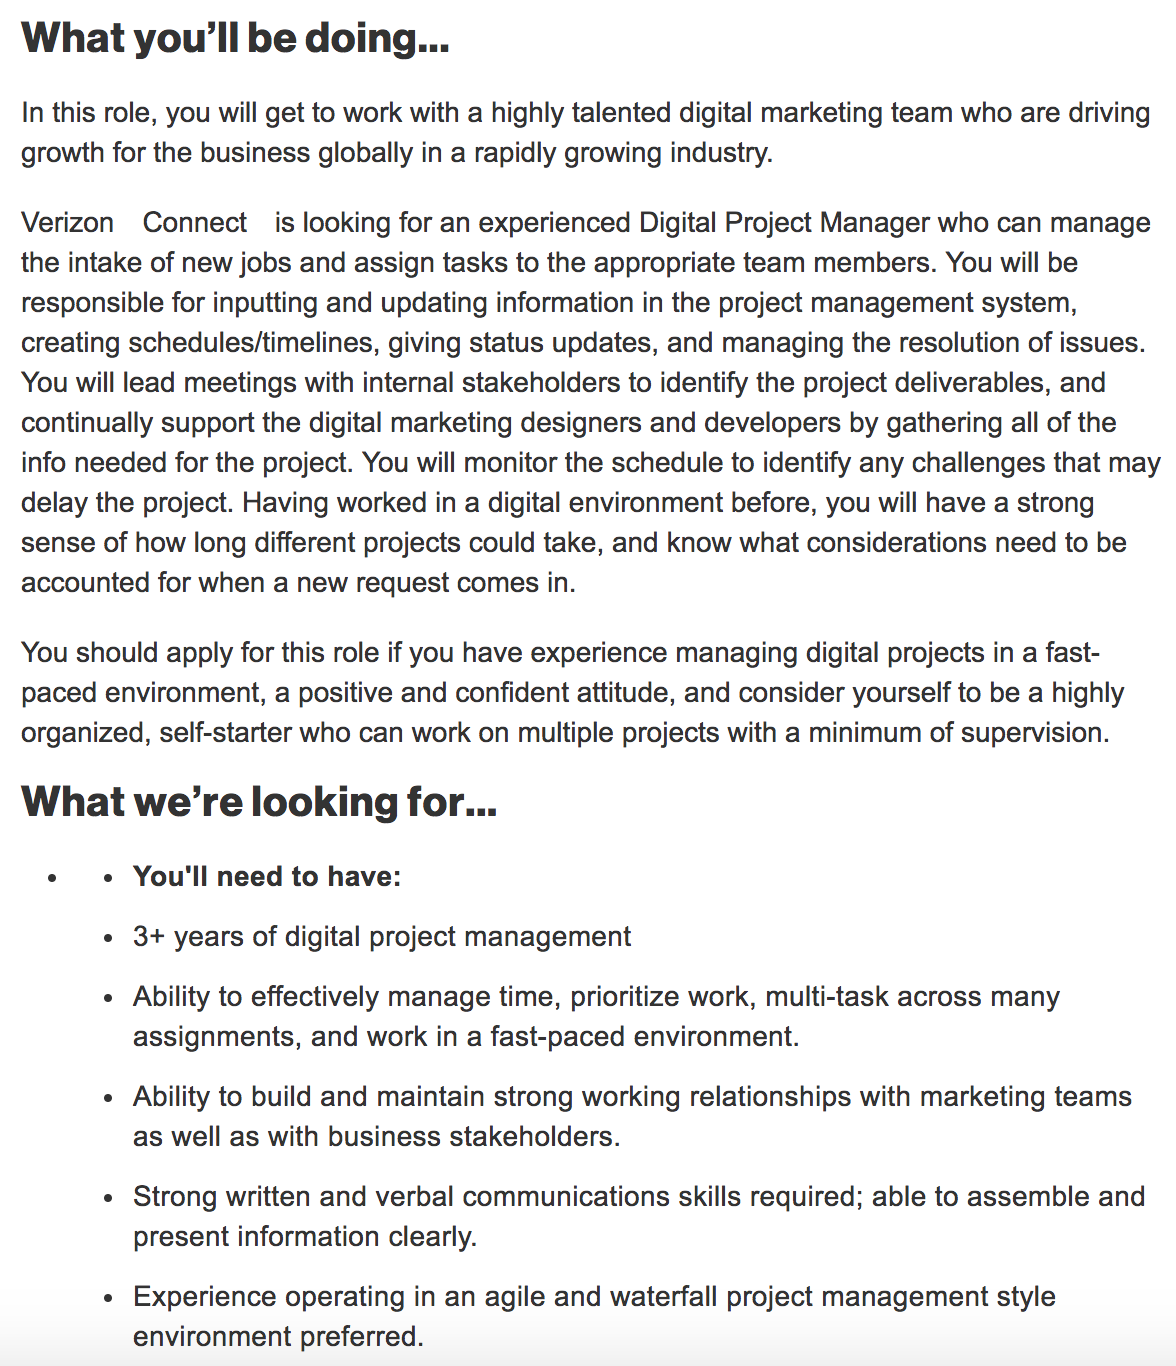 Example of a digital project manager job description